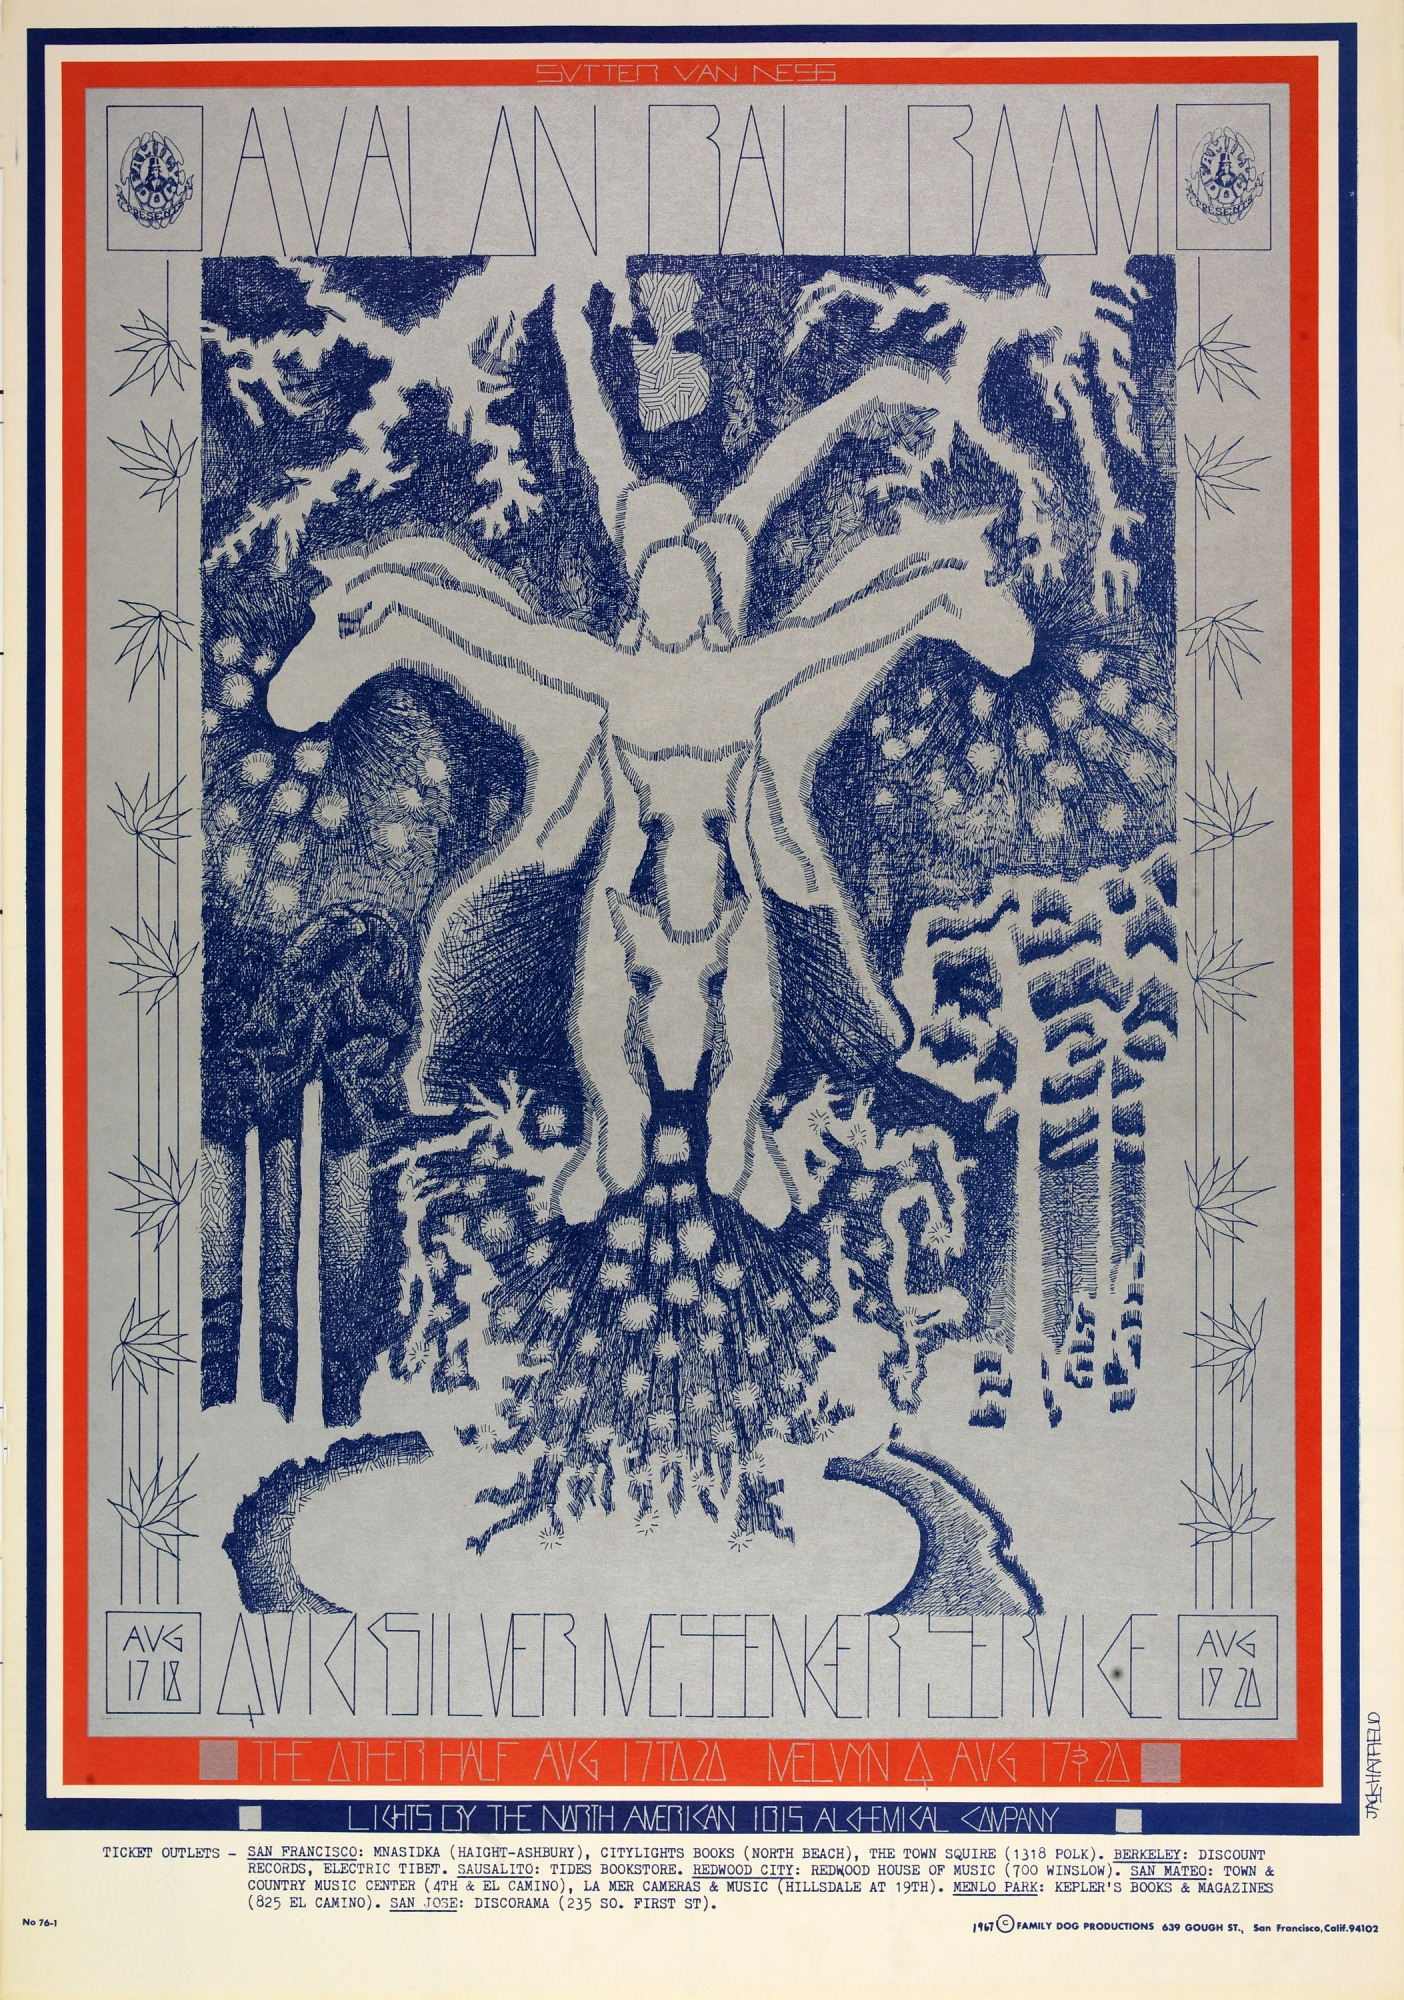 Image for High Yo Silver (Quicksilver Messenger Service, The Other Half...Avalon Ballroom, San Francisco, California 8/17/67-8/20/67)